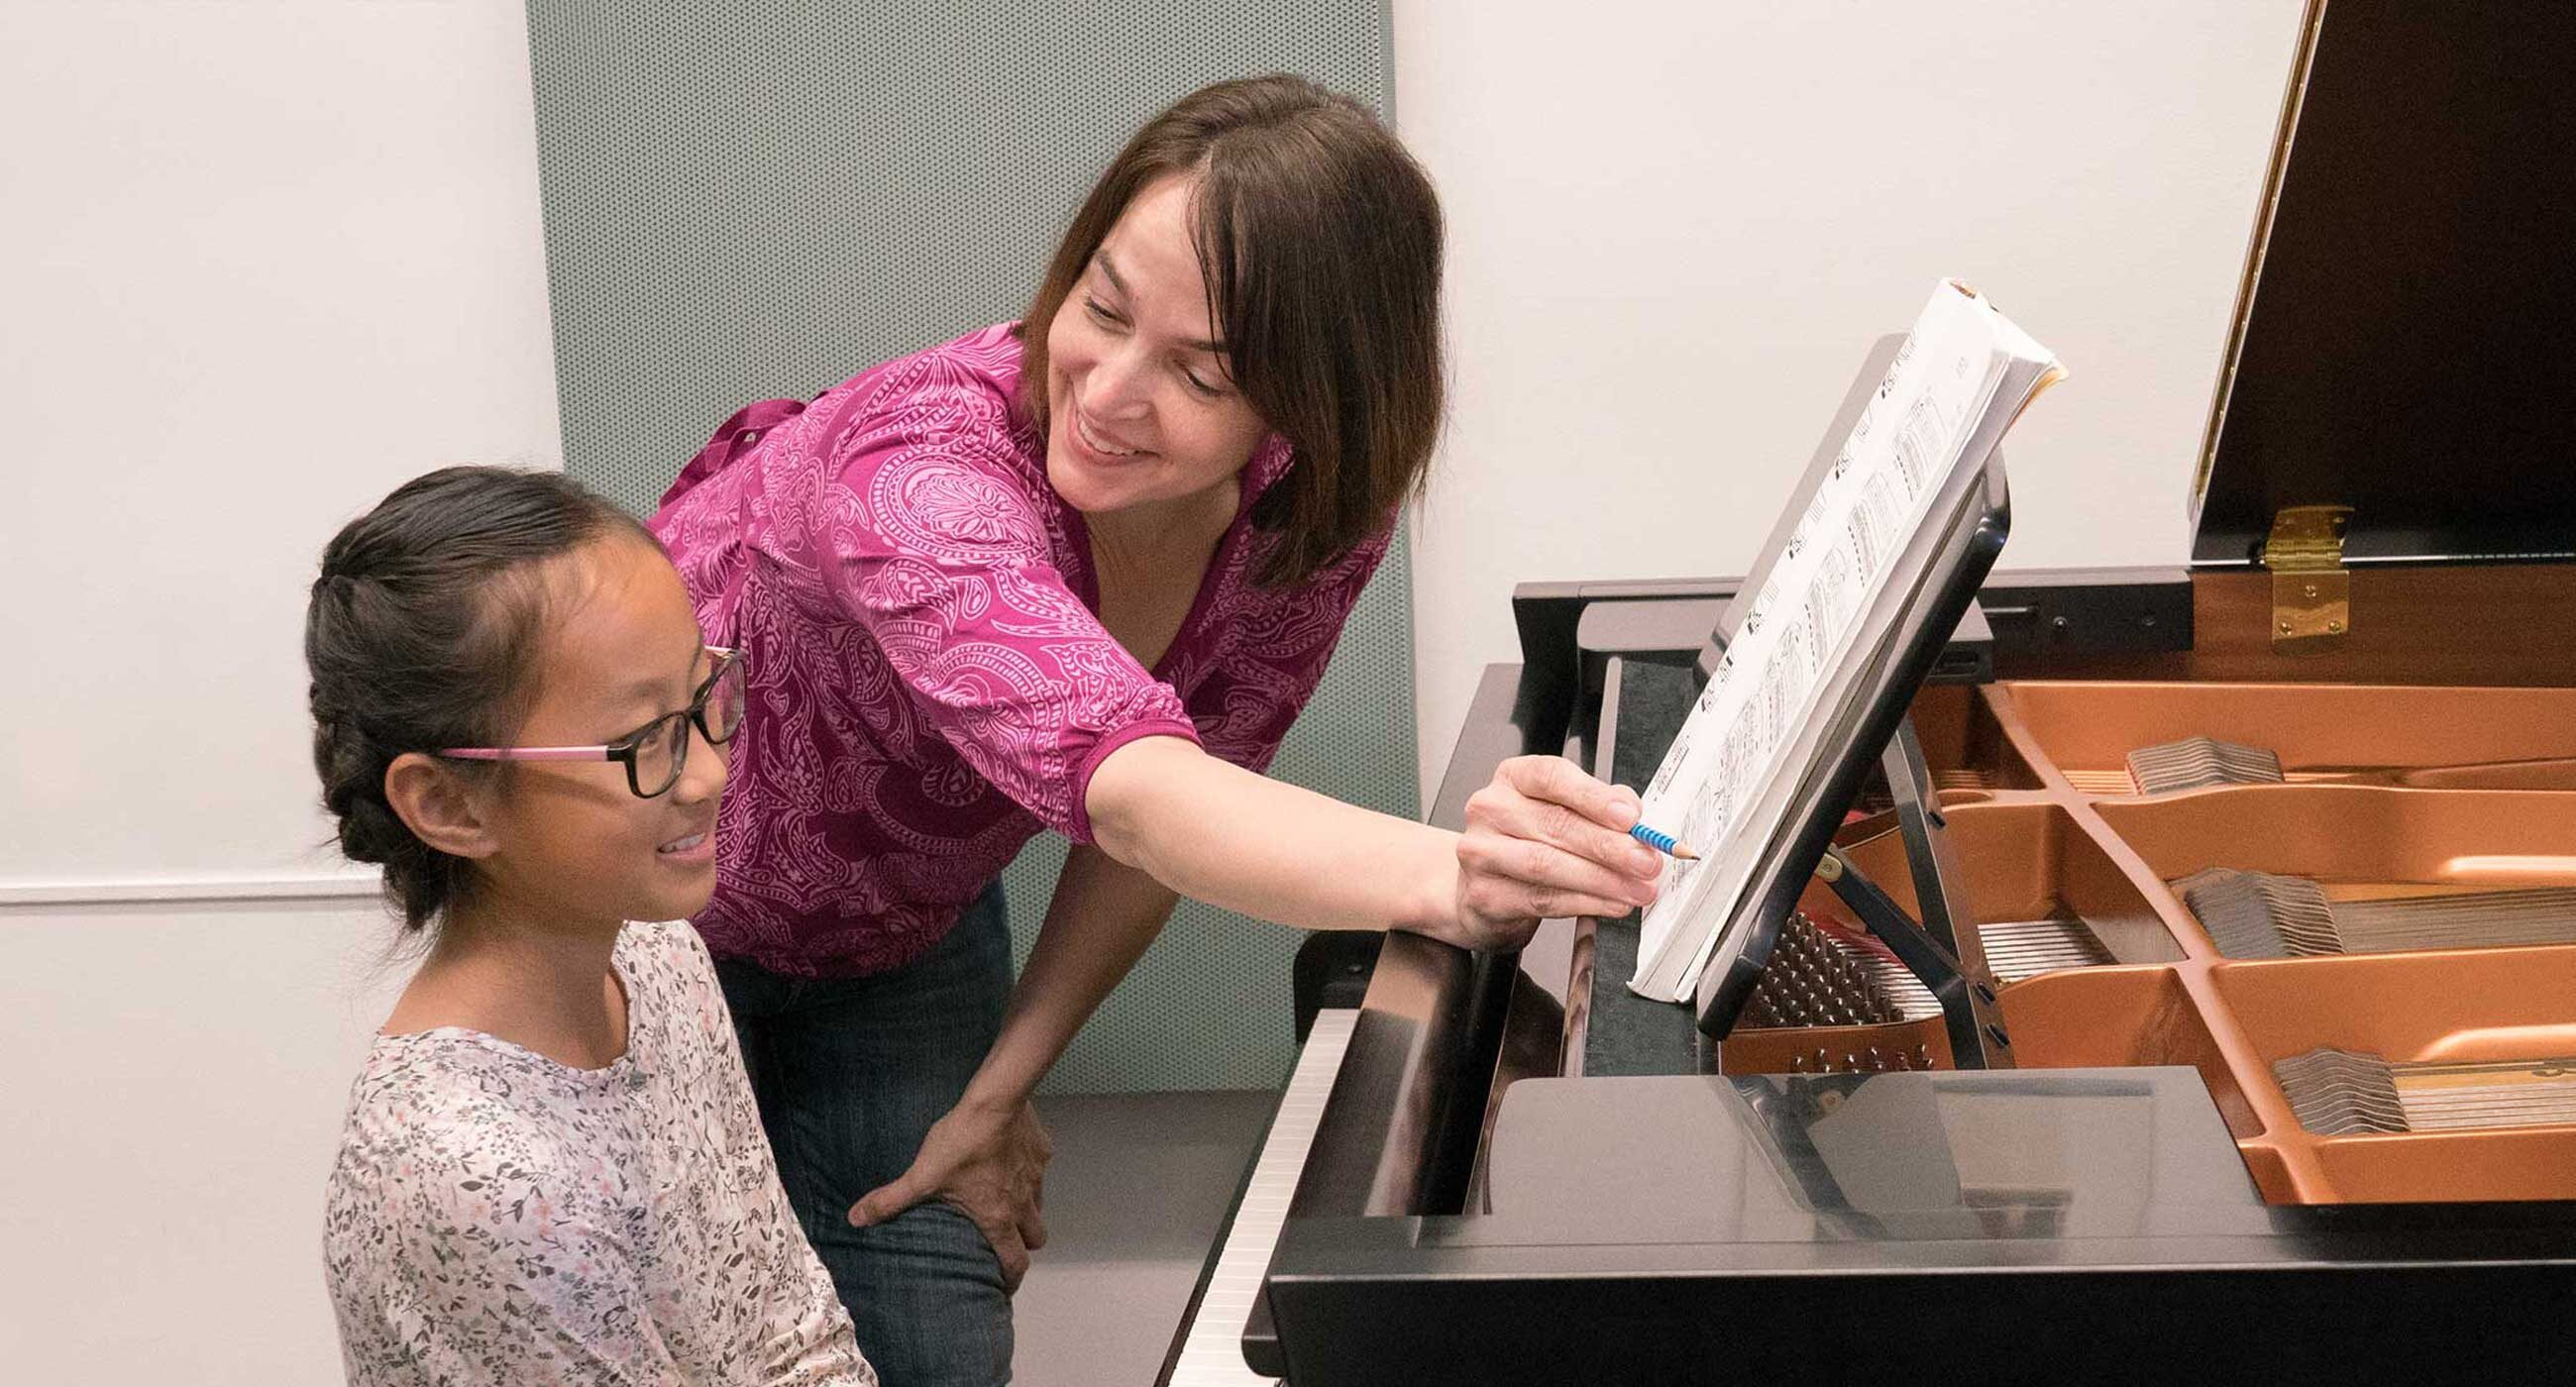 Teacher standing next to a student at a piano